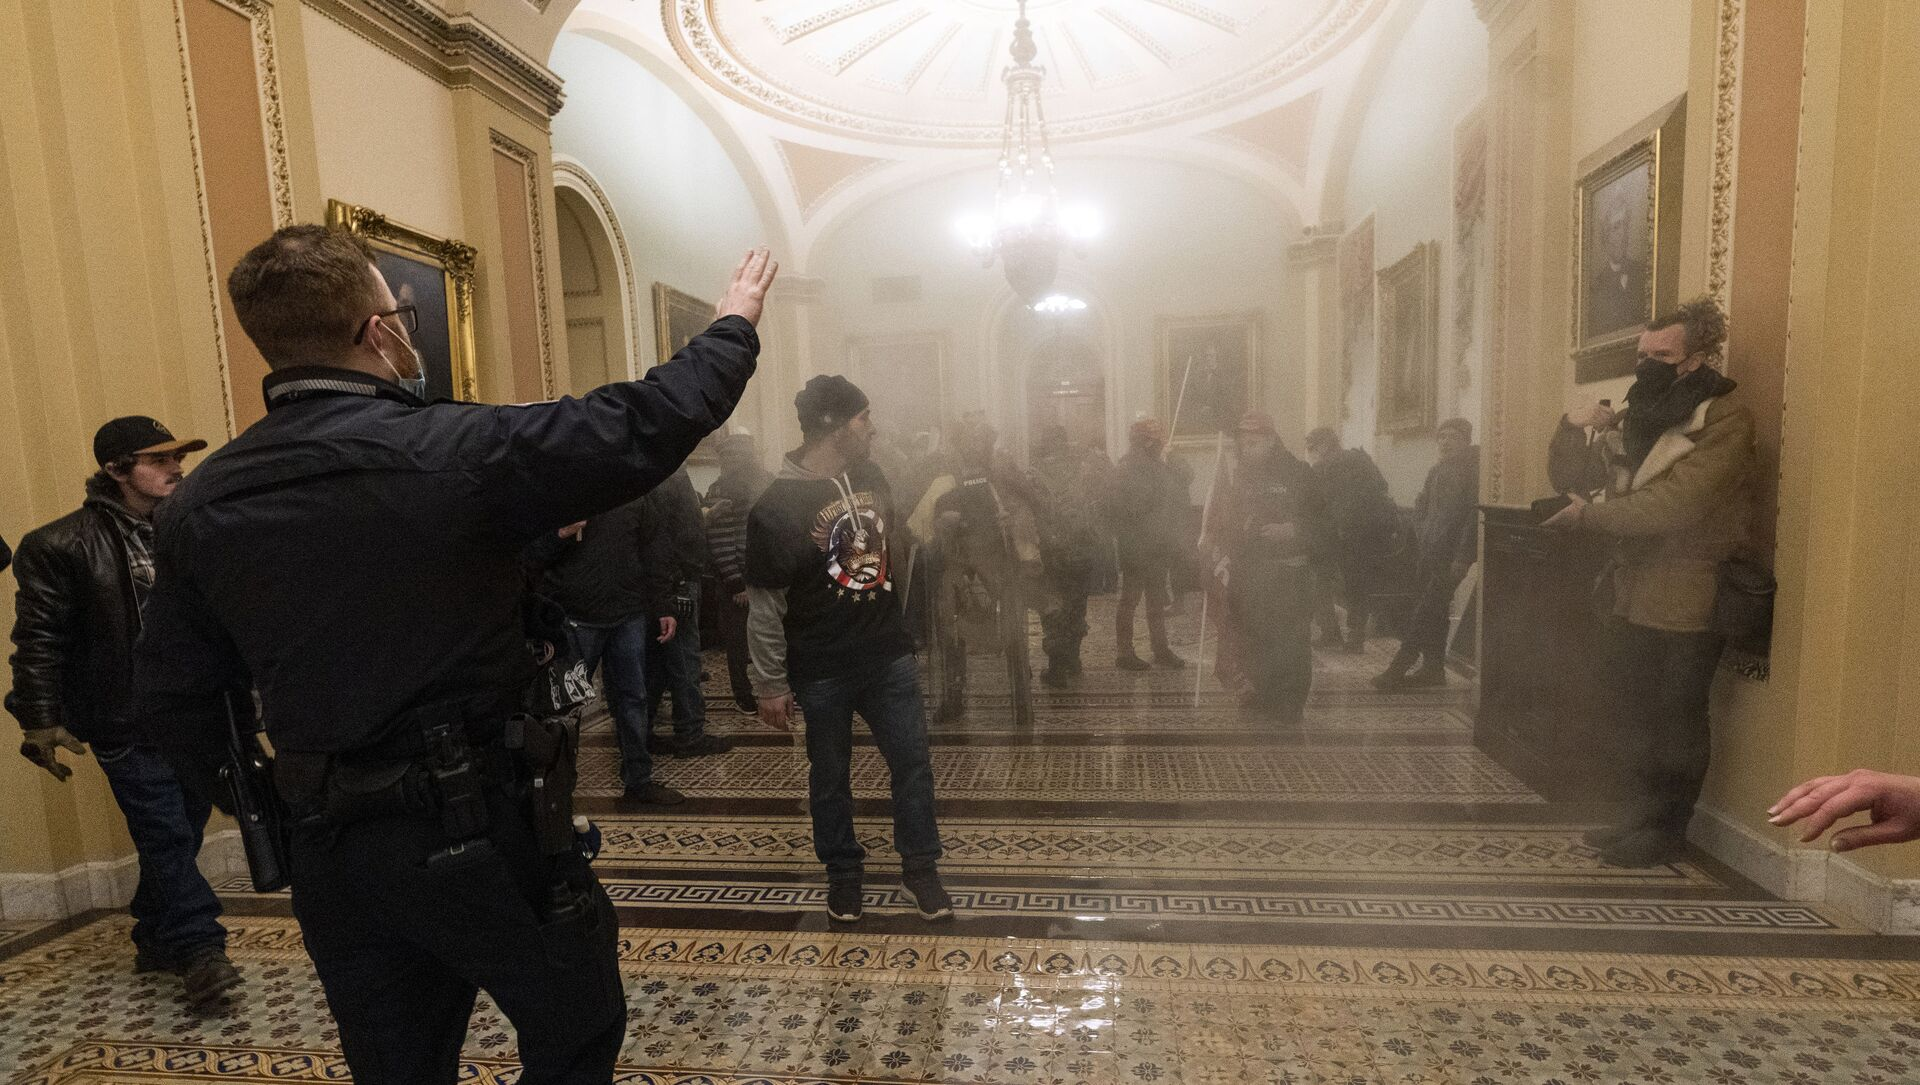 FILE - In this Jan. 6, 2021, file photo, smoke fills the walkway outside the Senate Chamber as rioters are confronted by U.S. Capitol Police officers inside the Capitol in Washington - Sputnik International, 1920, 24.07.2021